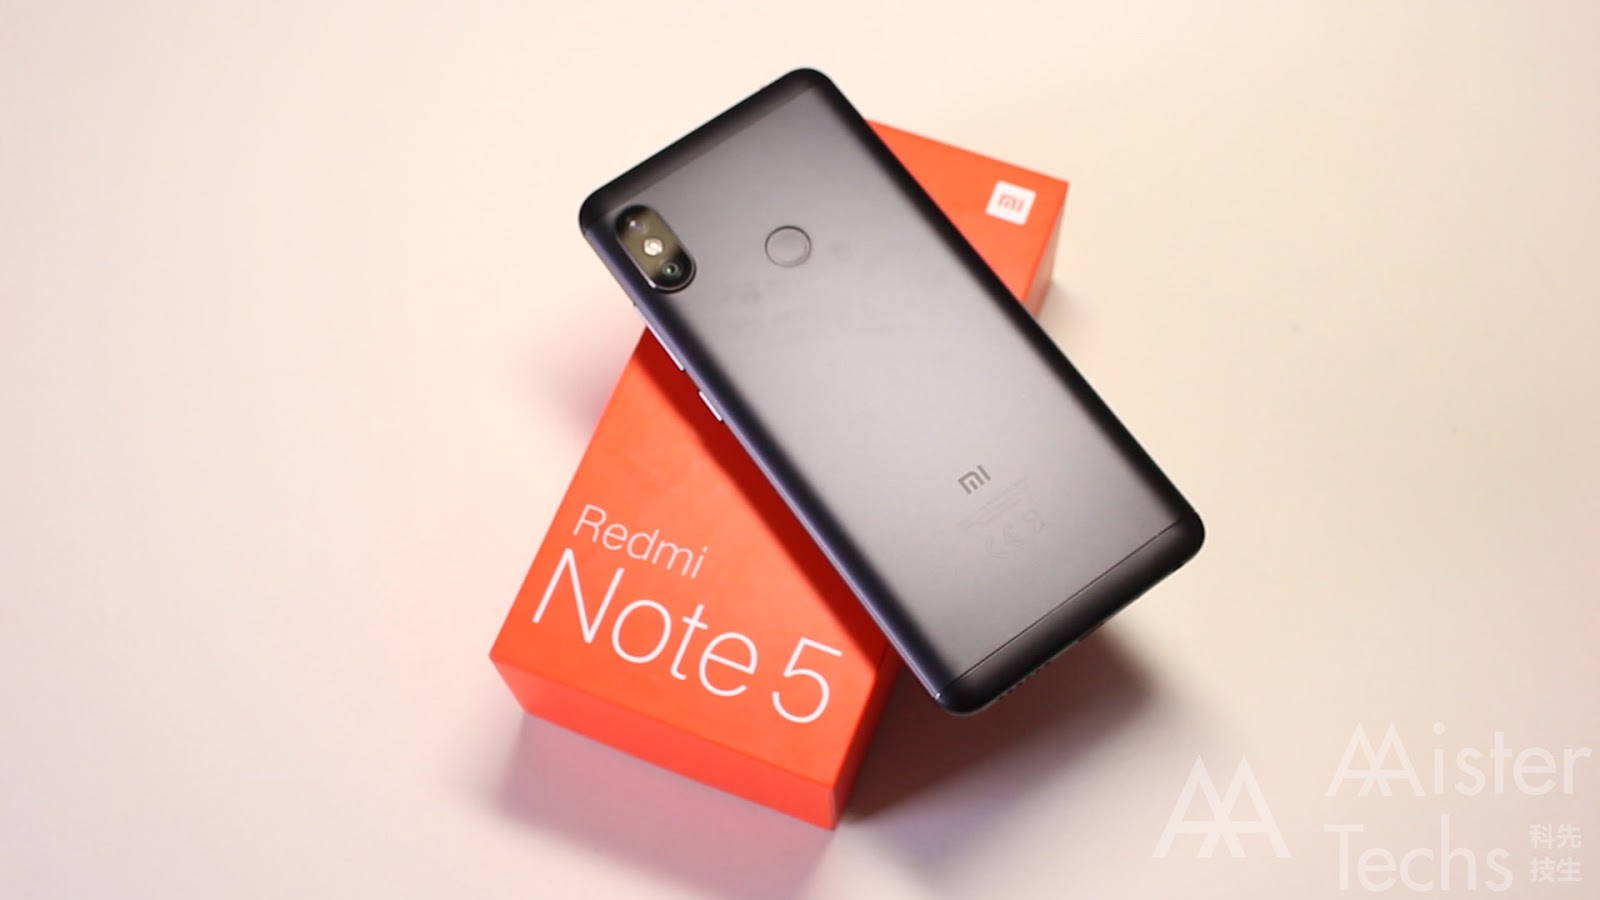 Xiaomi Redmi Note 5 (Pro) Review: The Best Value Phone with